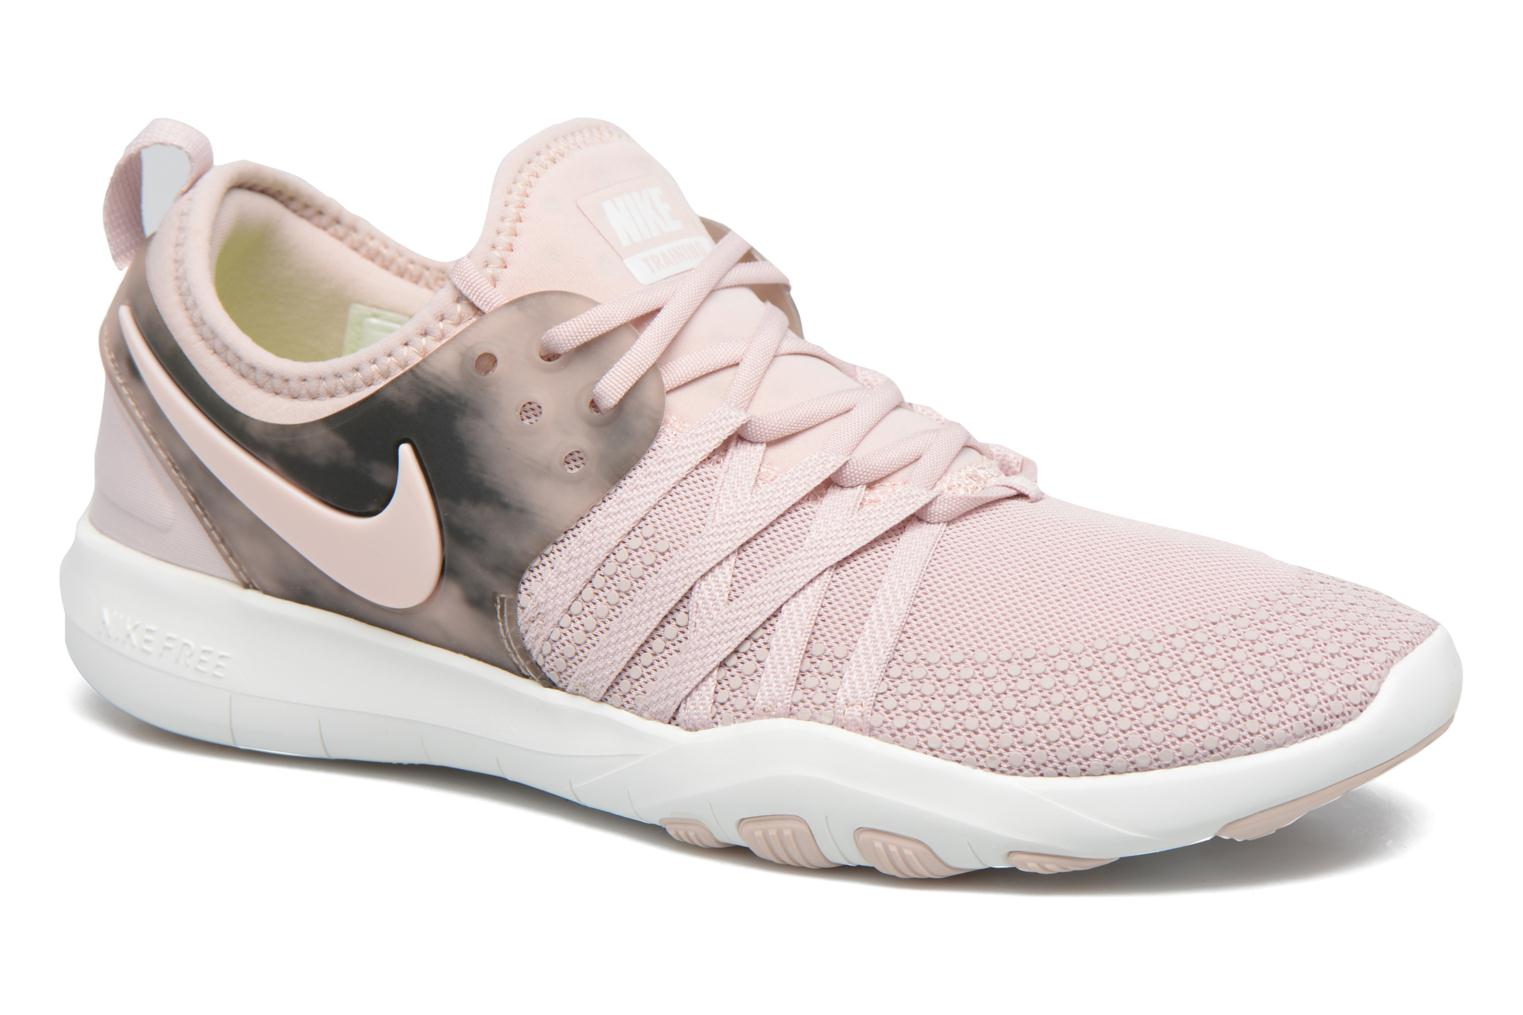 Marques Chaussure femme Nike femme Wmns Nike Free Tr 7 Amp Silt Red/Silt Red-Solar Red-Summit White